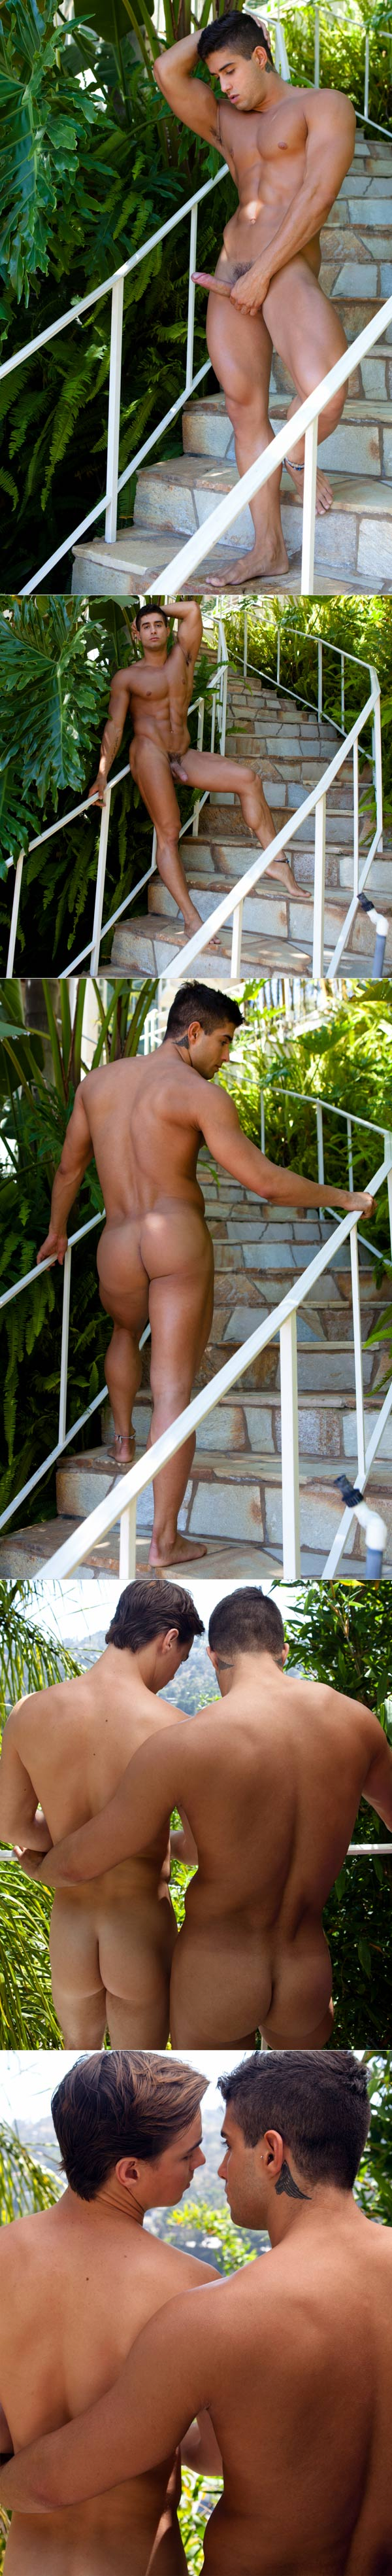 Welcome To LA: Hollywood (Justin Owen & Diego Sans) (Episode 2) at RandyBlue